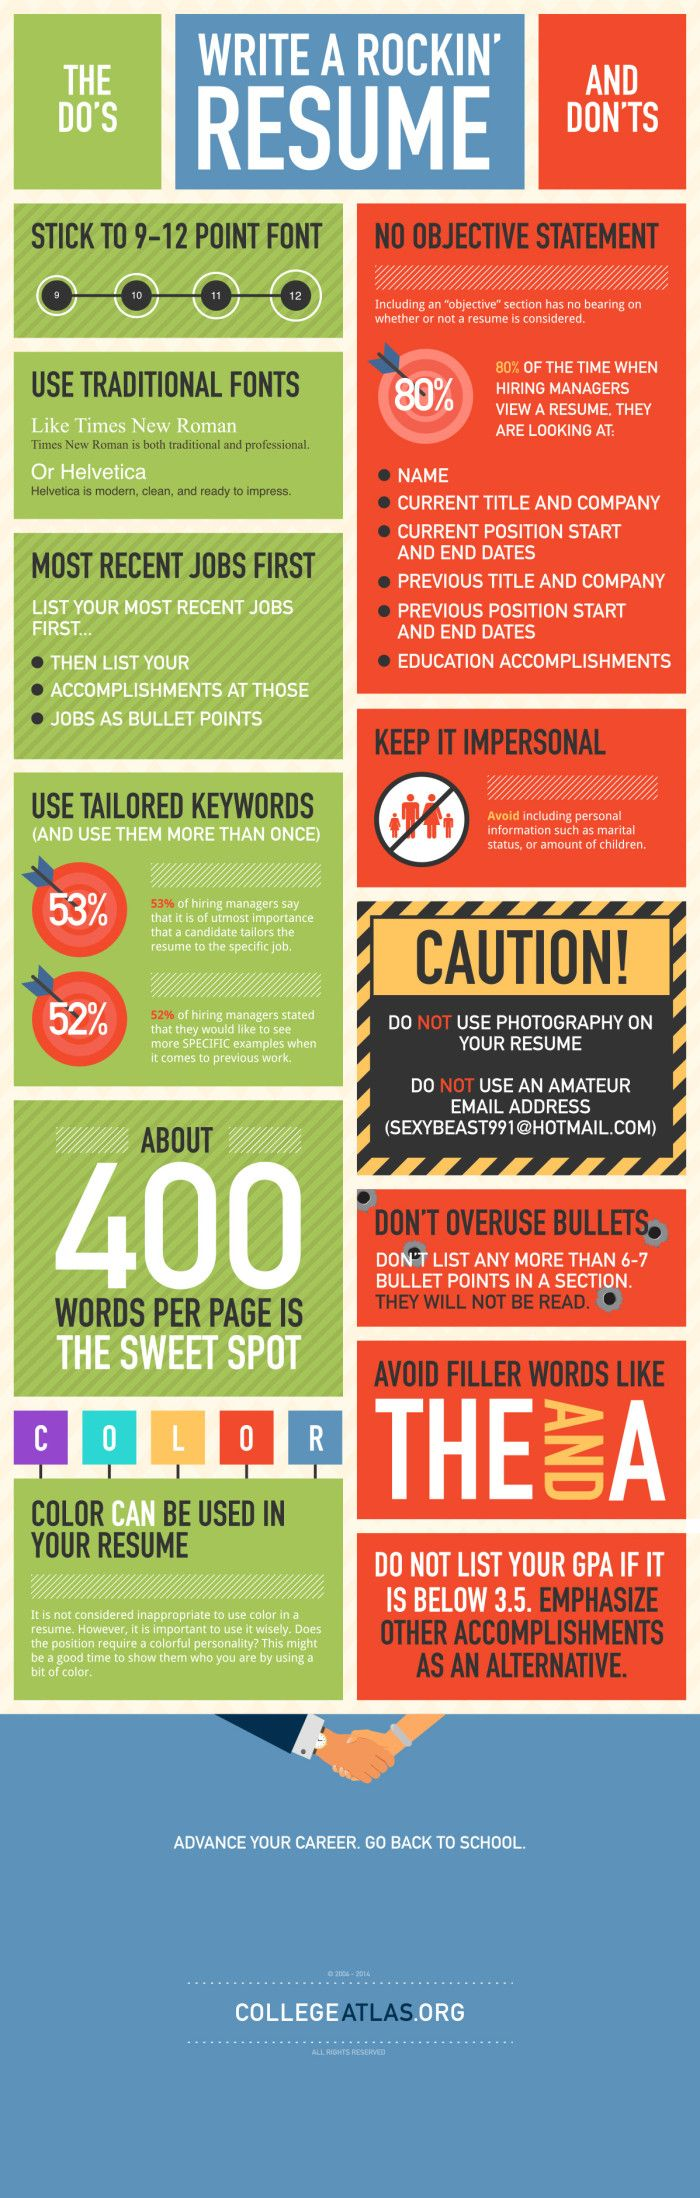 506 best Career Advice for College Students images on Pinterest ...